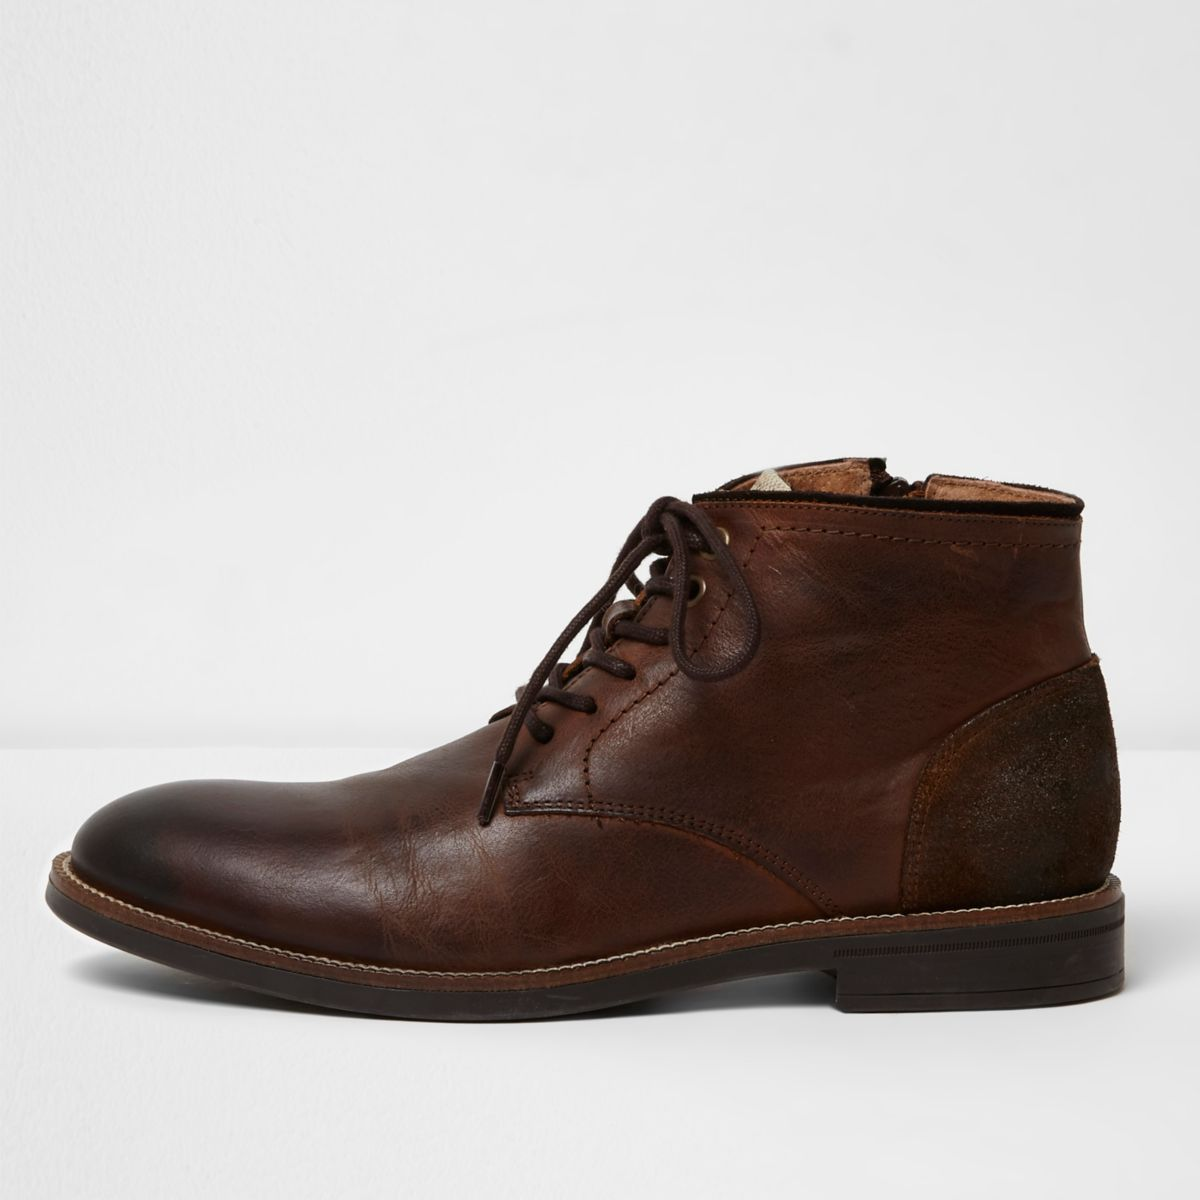 brown leather chukka boots boots shoes boots